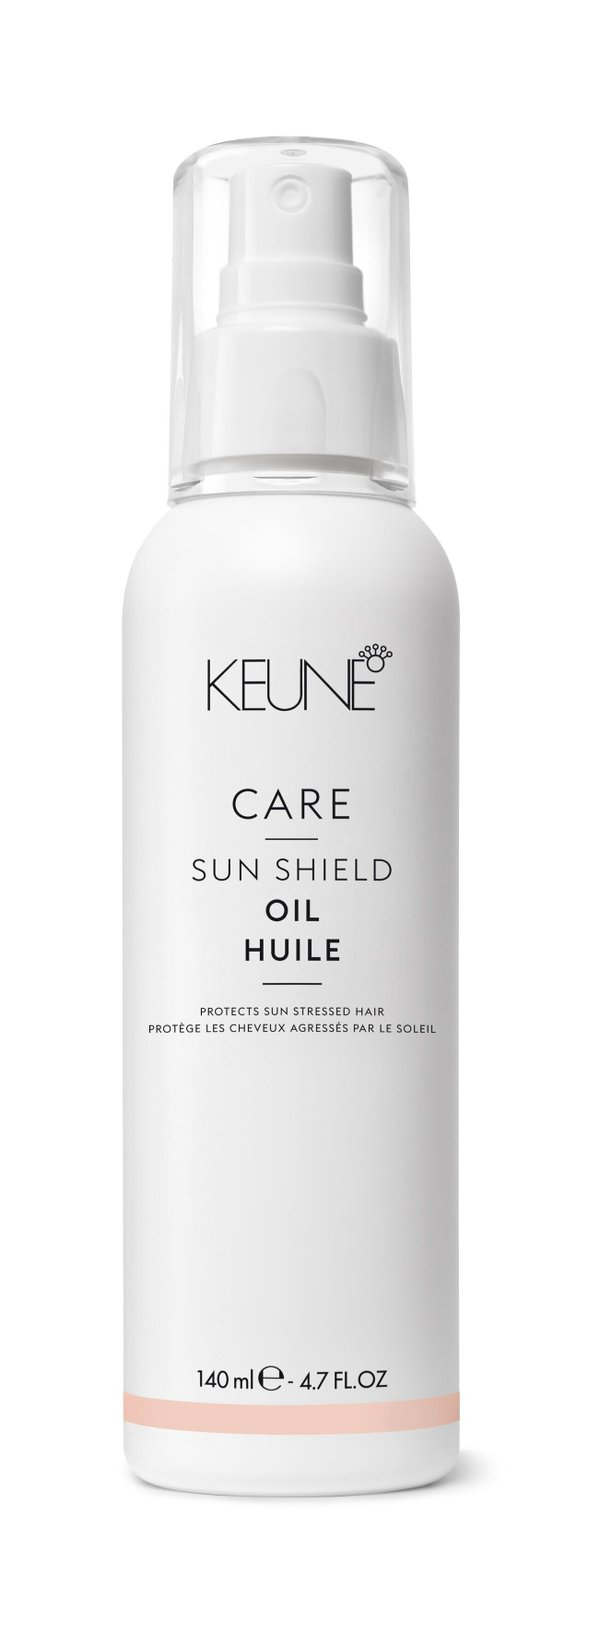 Foto do produto CARE SUN SHIELD OIL